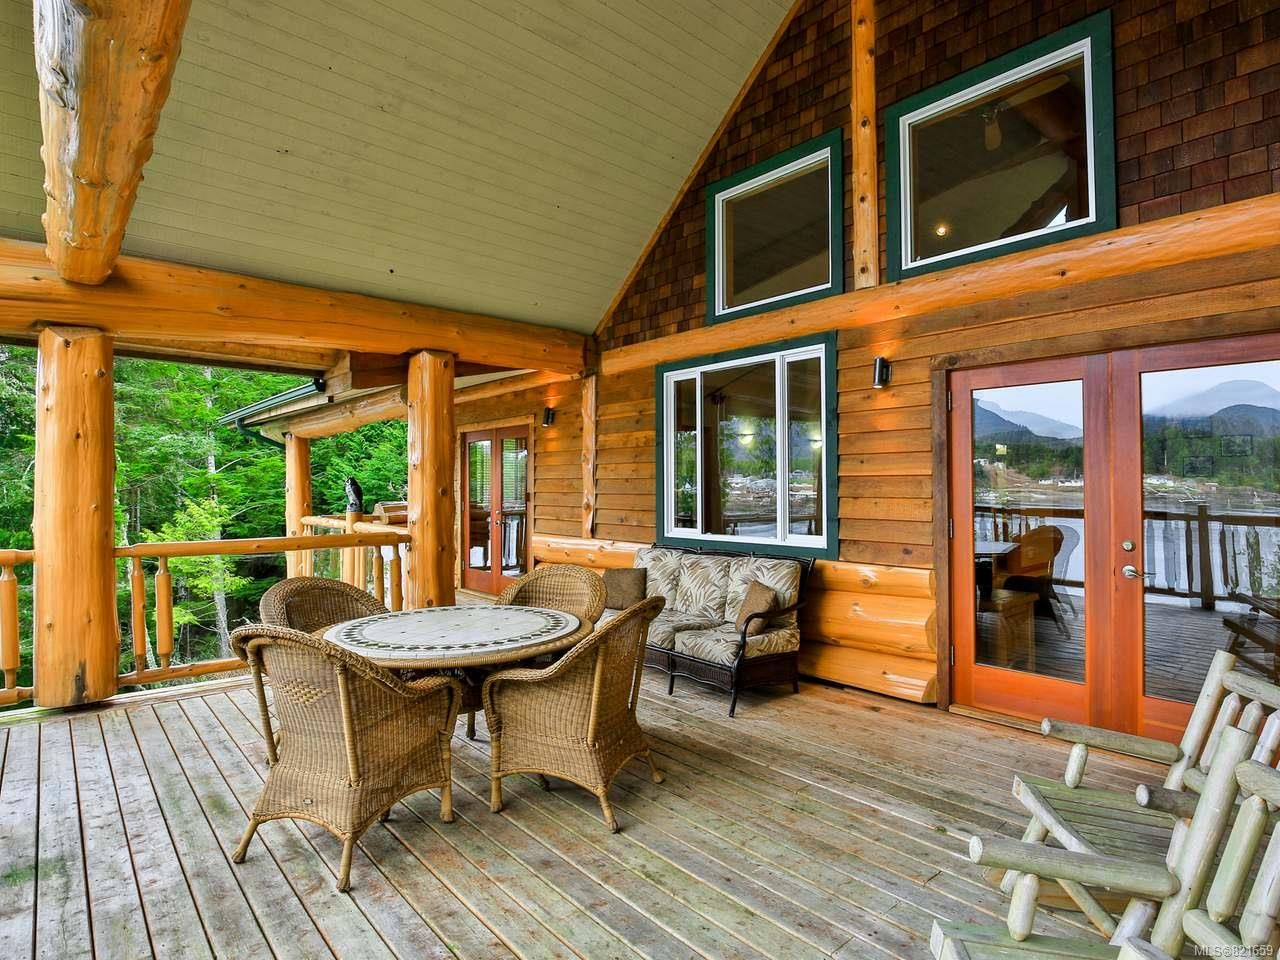 Photo 44: Photos: 1049 Helen Rd in UCLUELET: PA Ucluelet House for sale (Port Alberni)  : MLS®# 821659